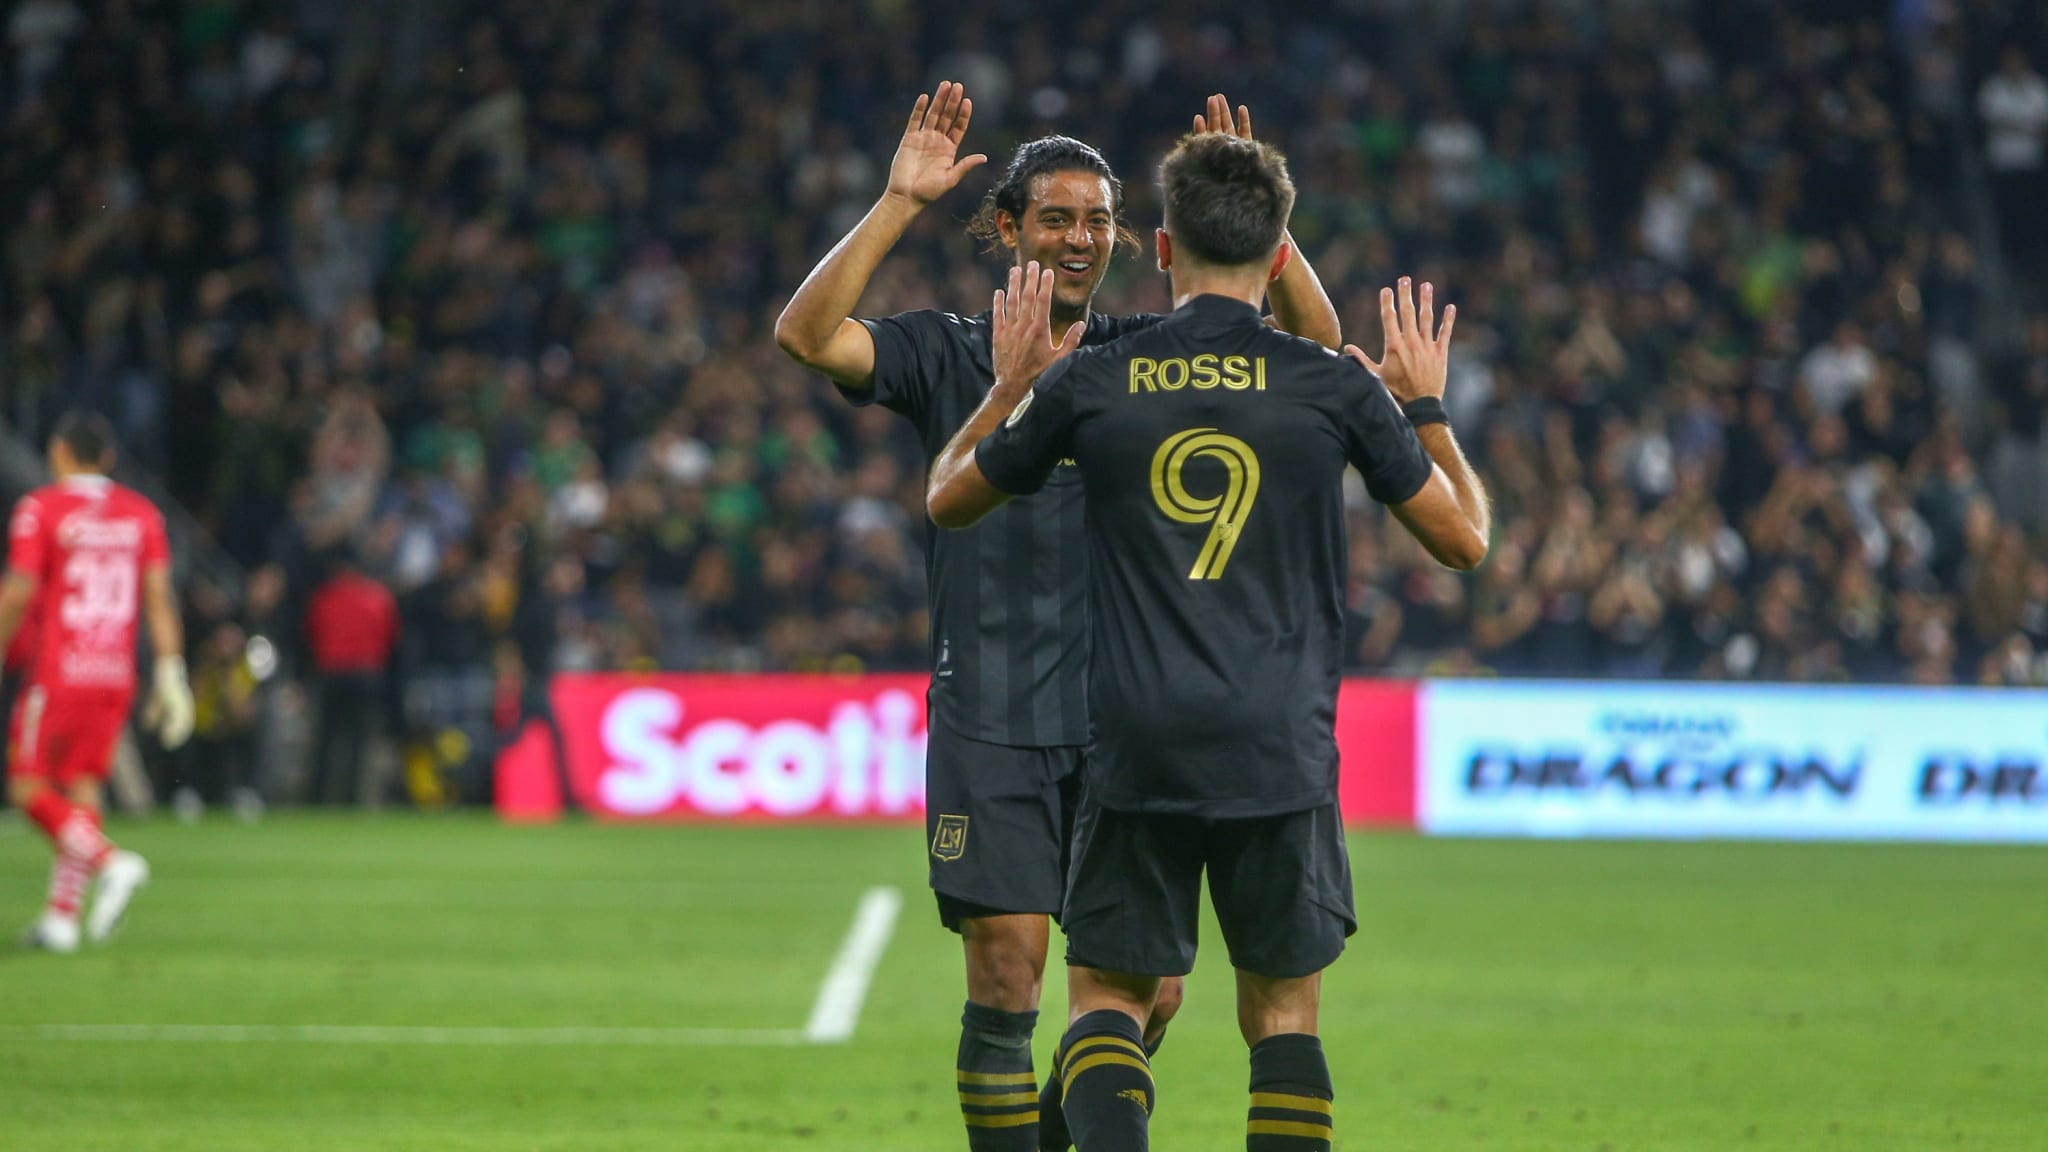 Carlos Vela and Diego Rossi of LAFC celebrate in the Round of 16 match against Club Leon in the Concacaf Champions League